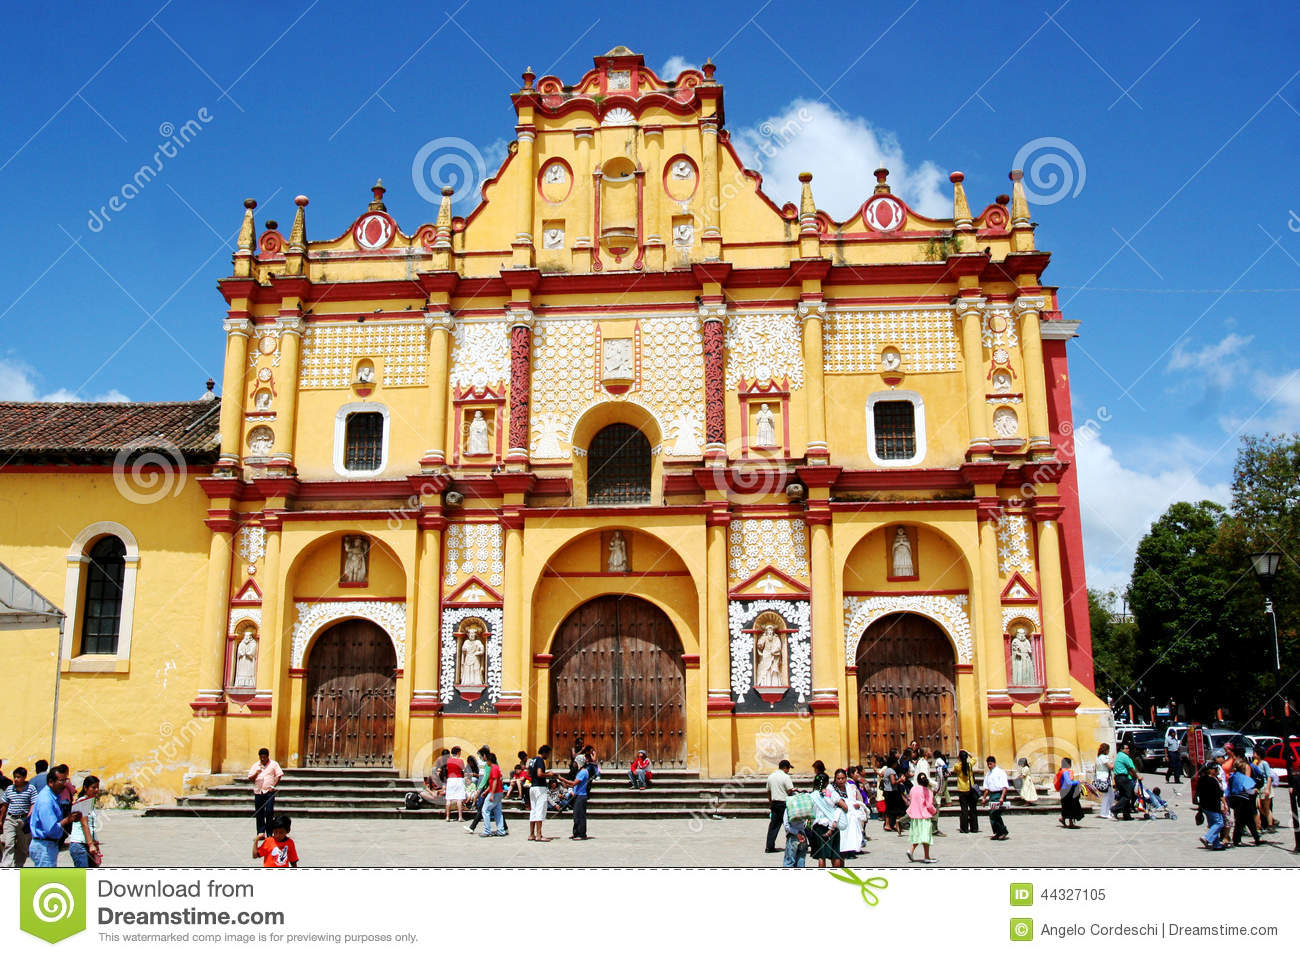 san cristobal de las casas christian personals Meet thousands of local singles in the san cristobal de las casas, mexico dating area today find your true love at matchmakercom.